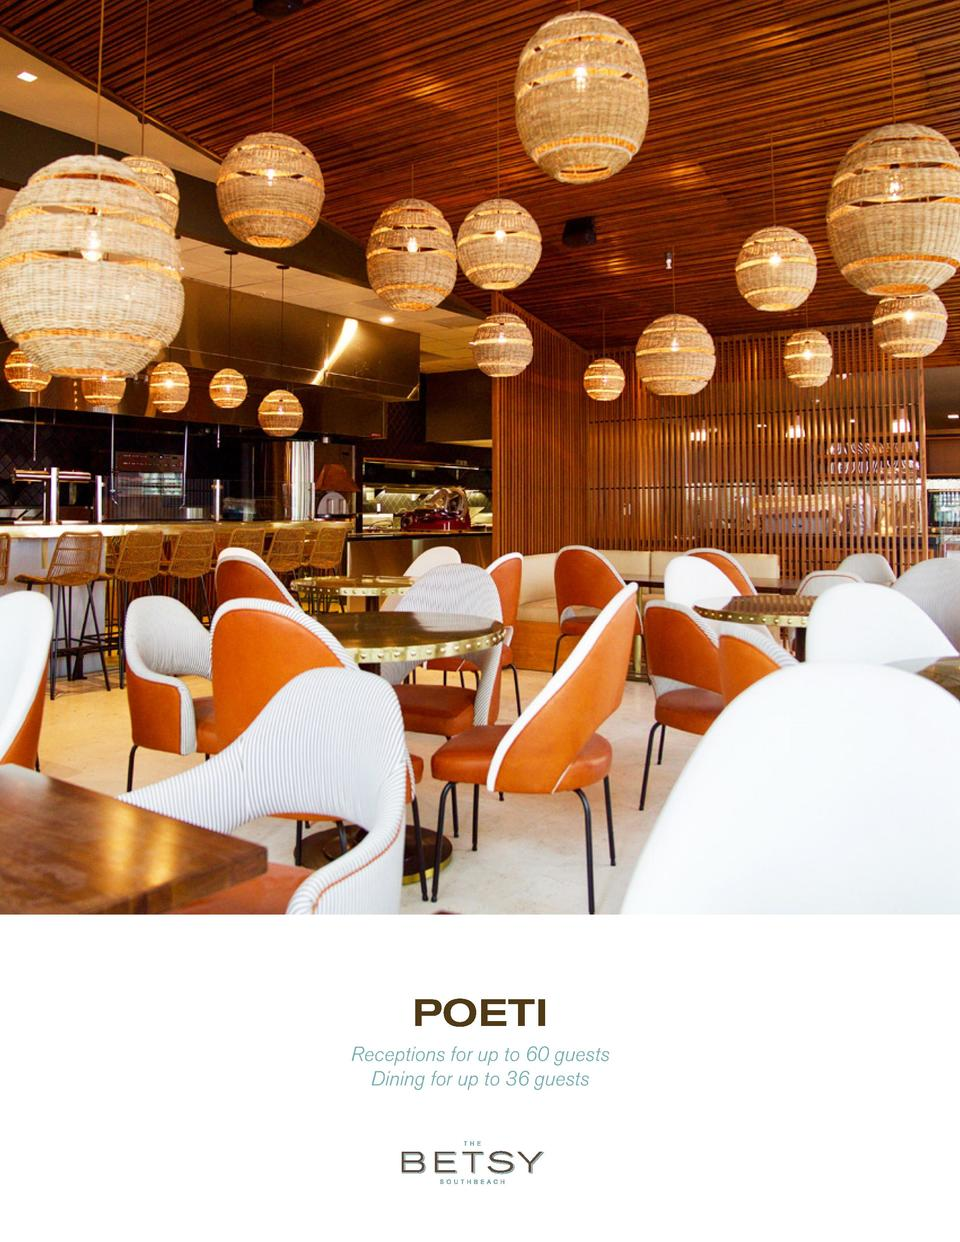 POETI Receptions for up to 60 guests Dining for up to 36 guests